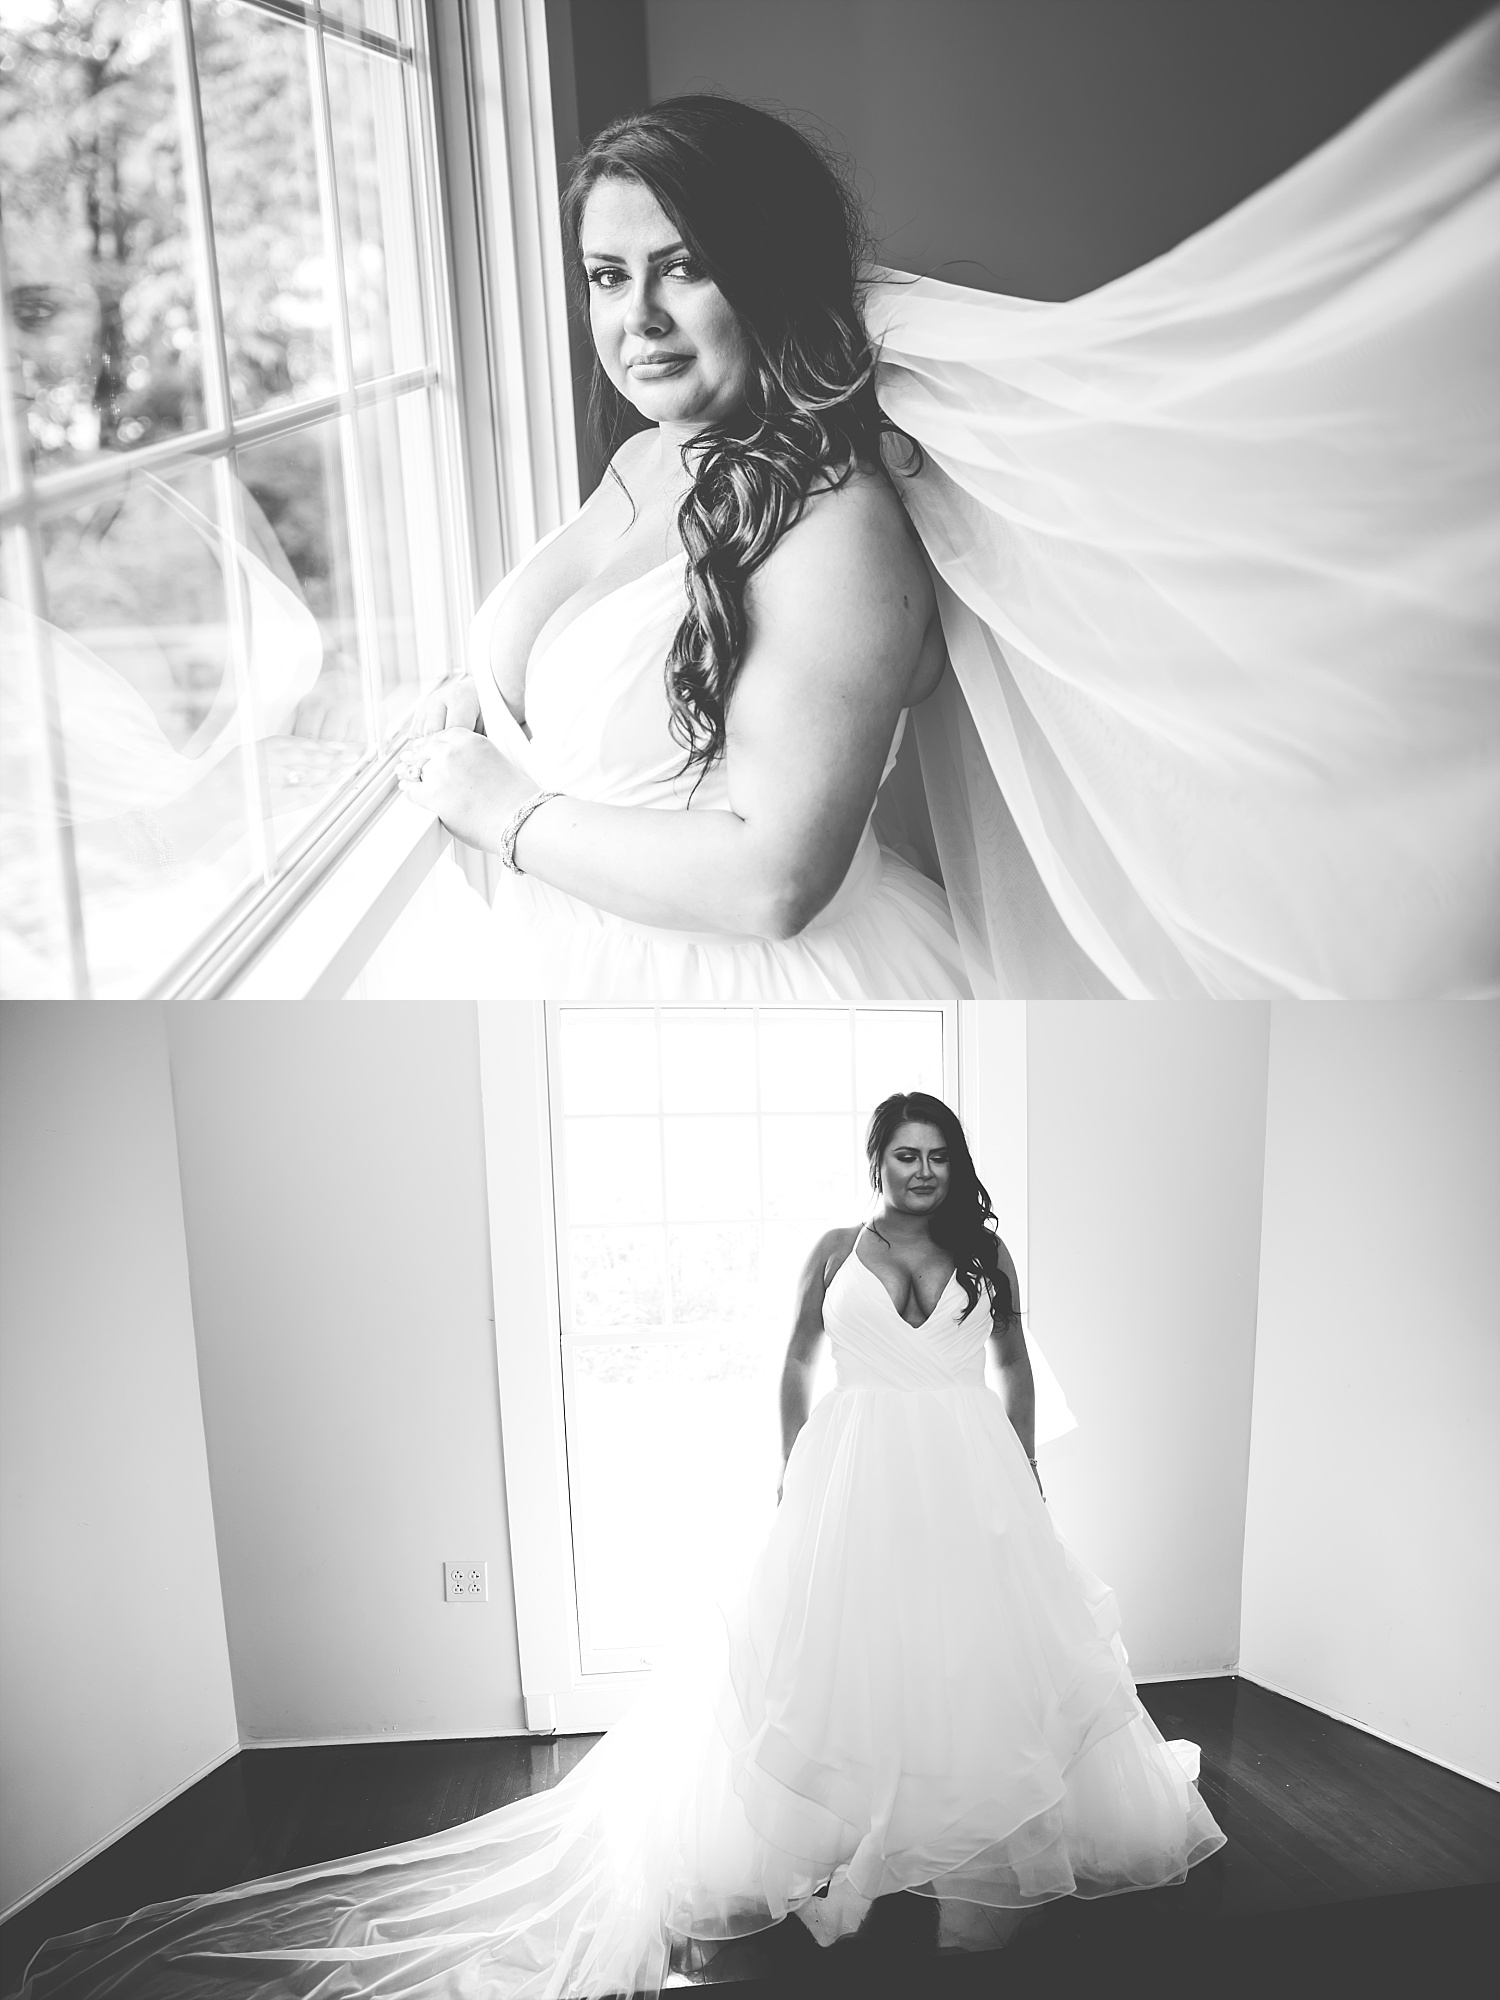 Hannah-cessna-photography-akron-cleveland-ohio-wedding-photograper_0044.jpg